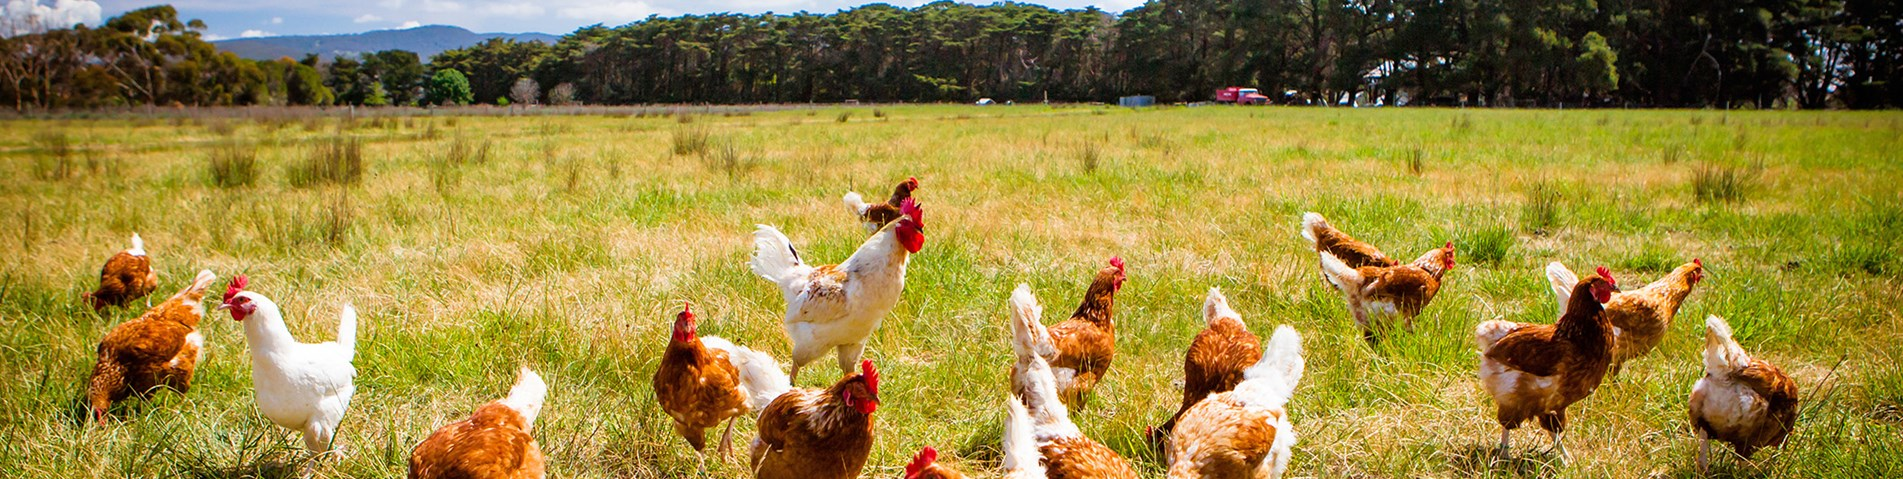 How to reduce antibiotic use on broiler chicken farms